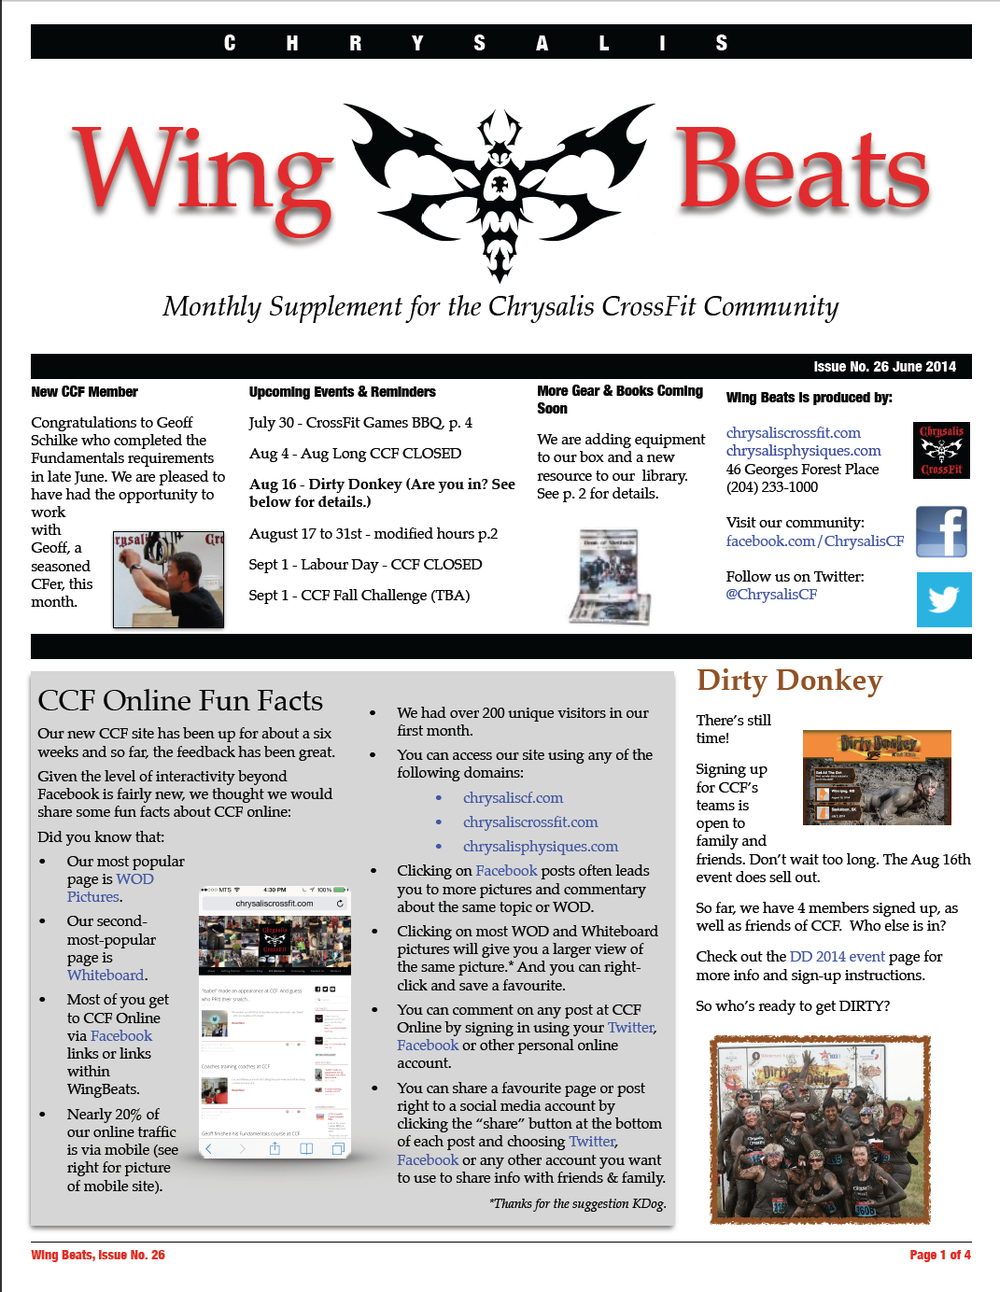 WingBeats Issue #26 - June 2014